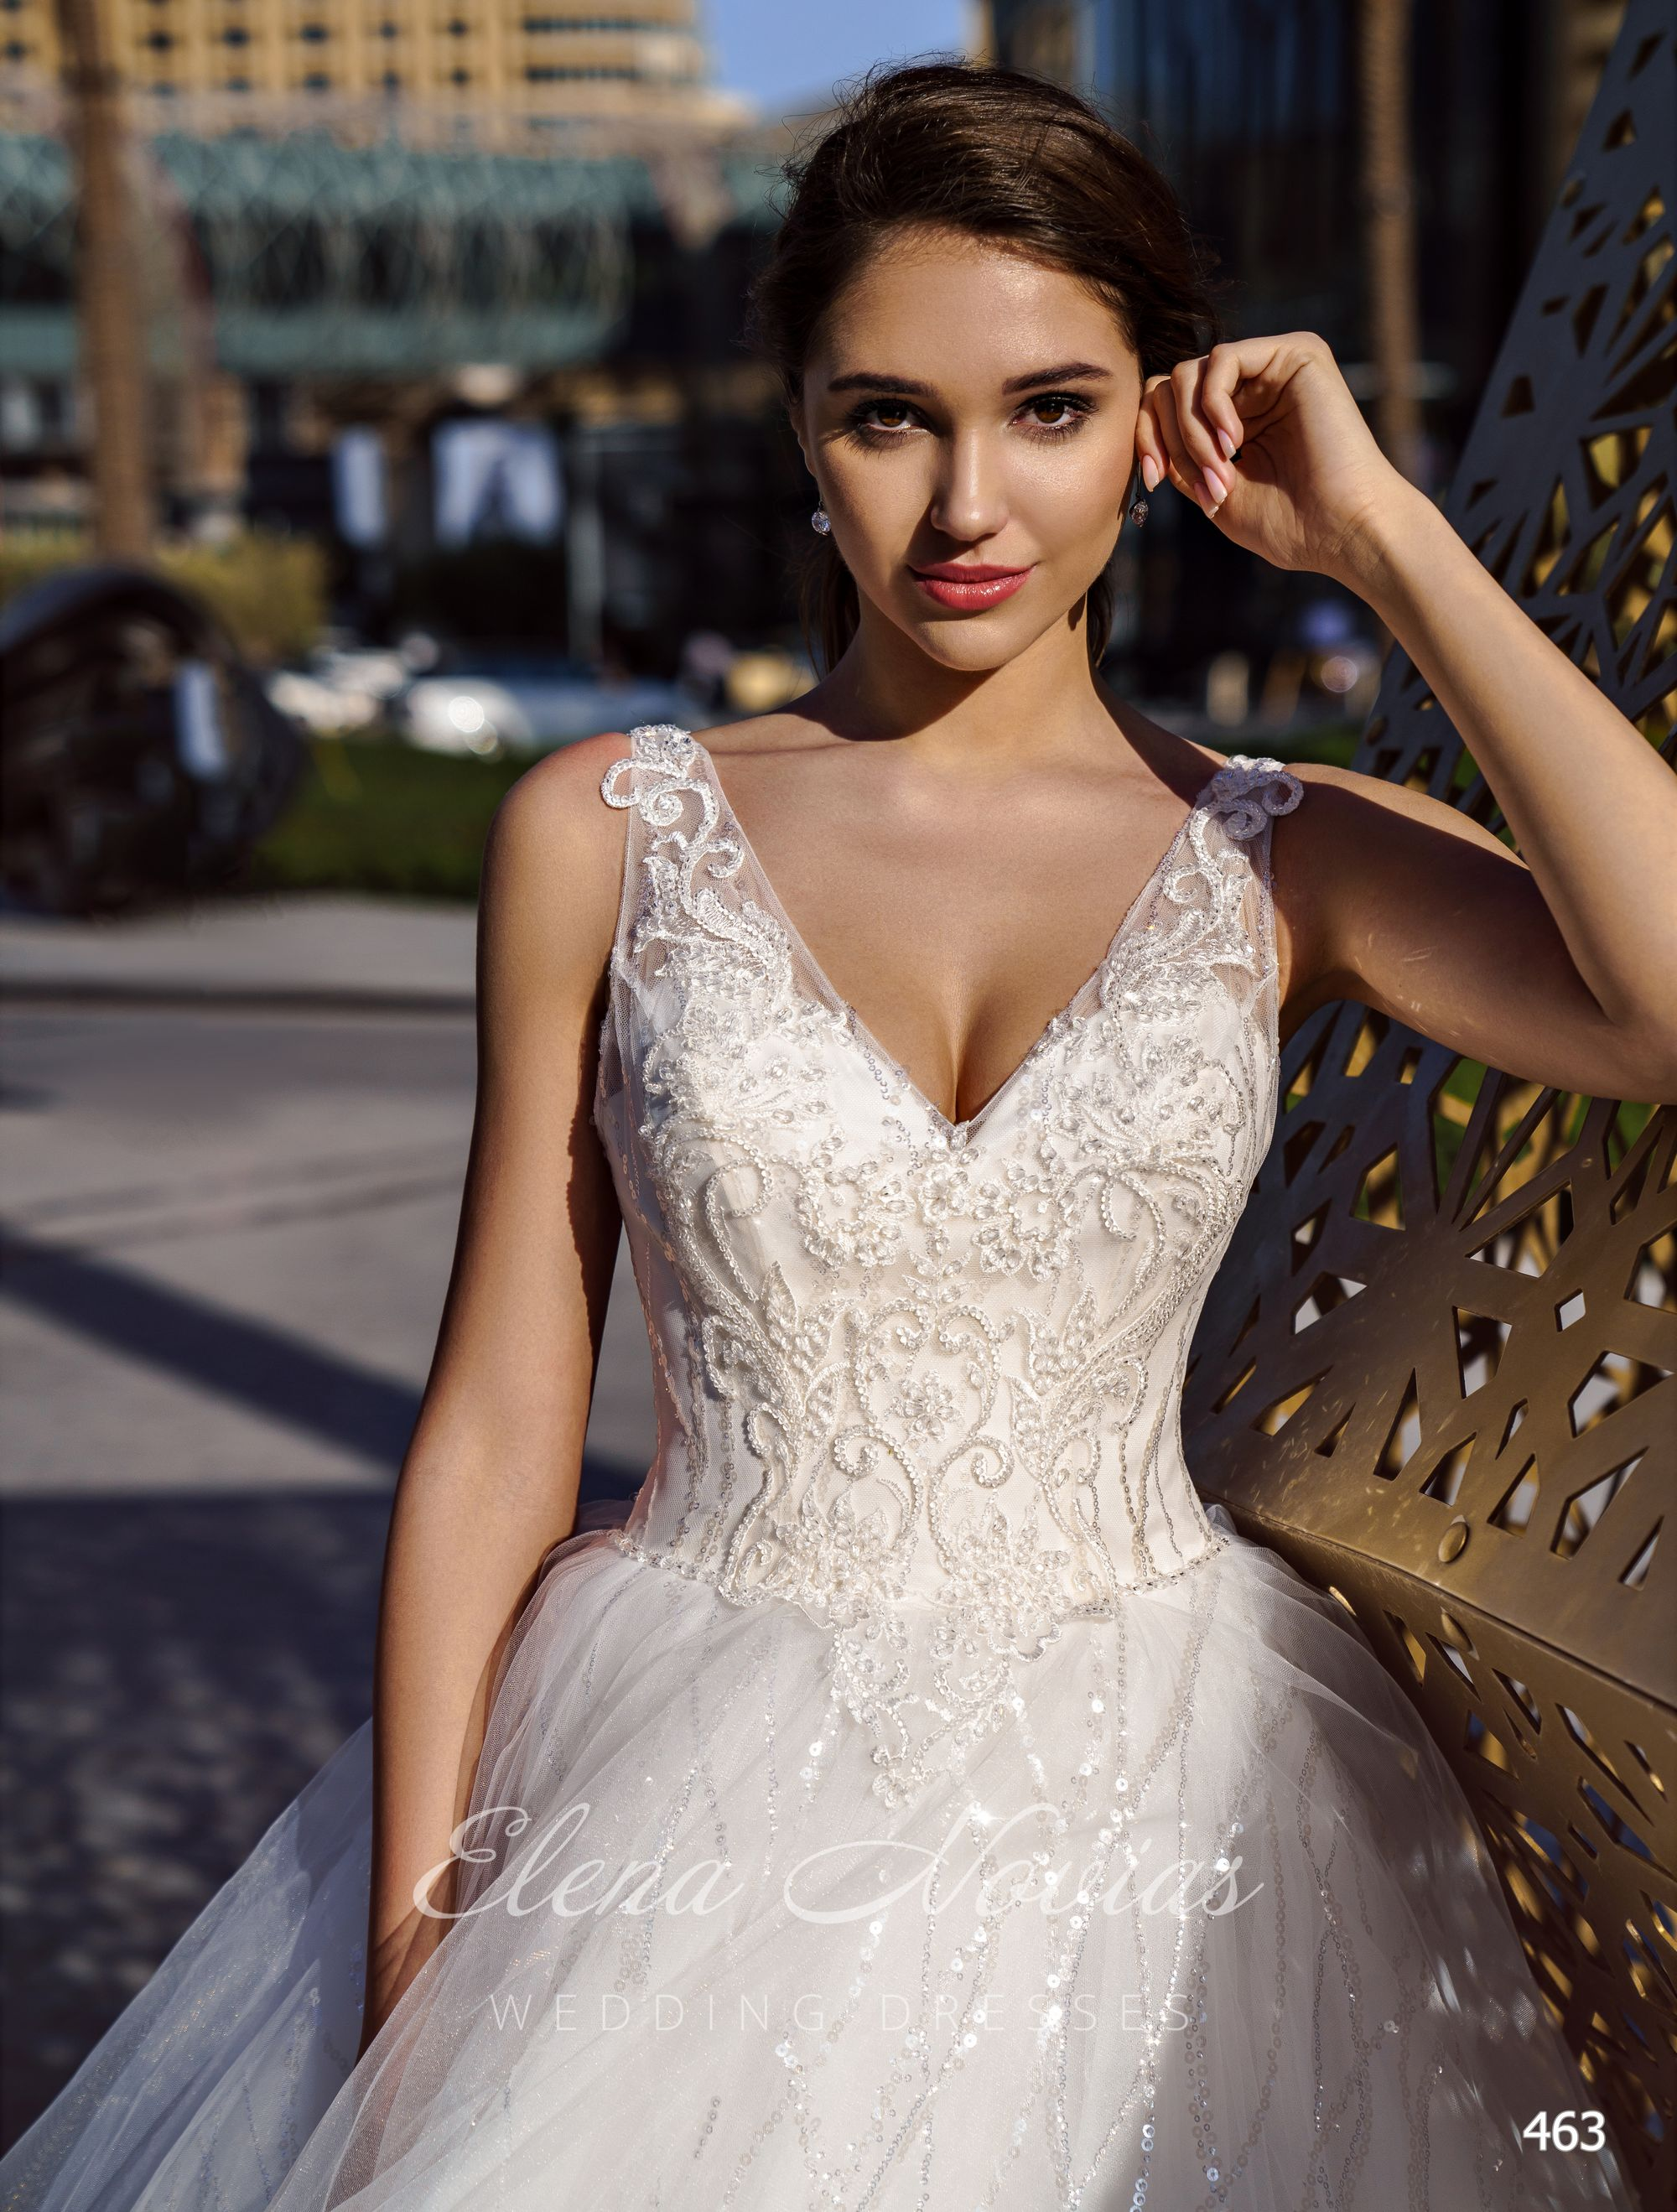 Wedding dresses 463 1